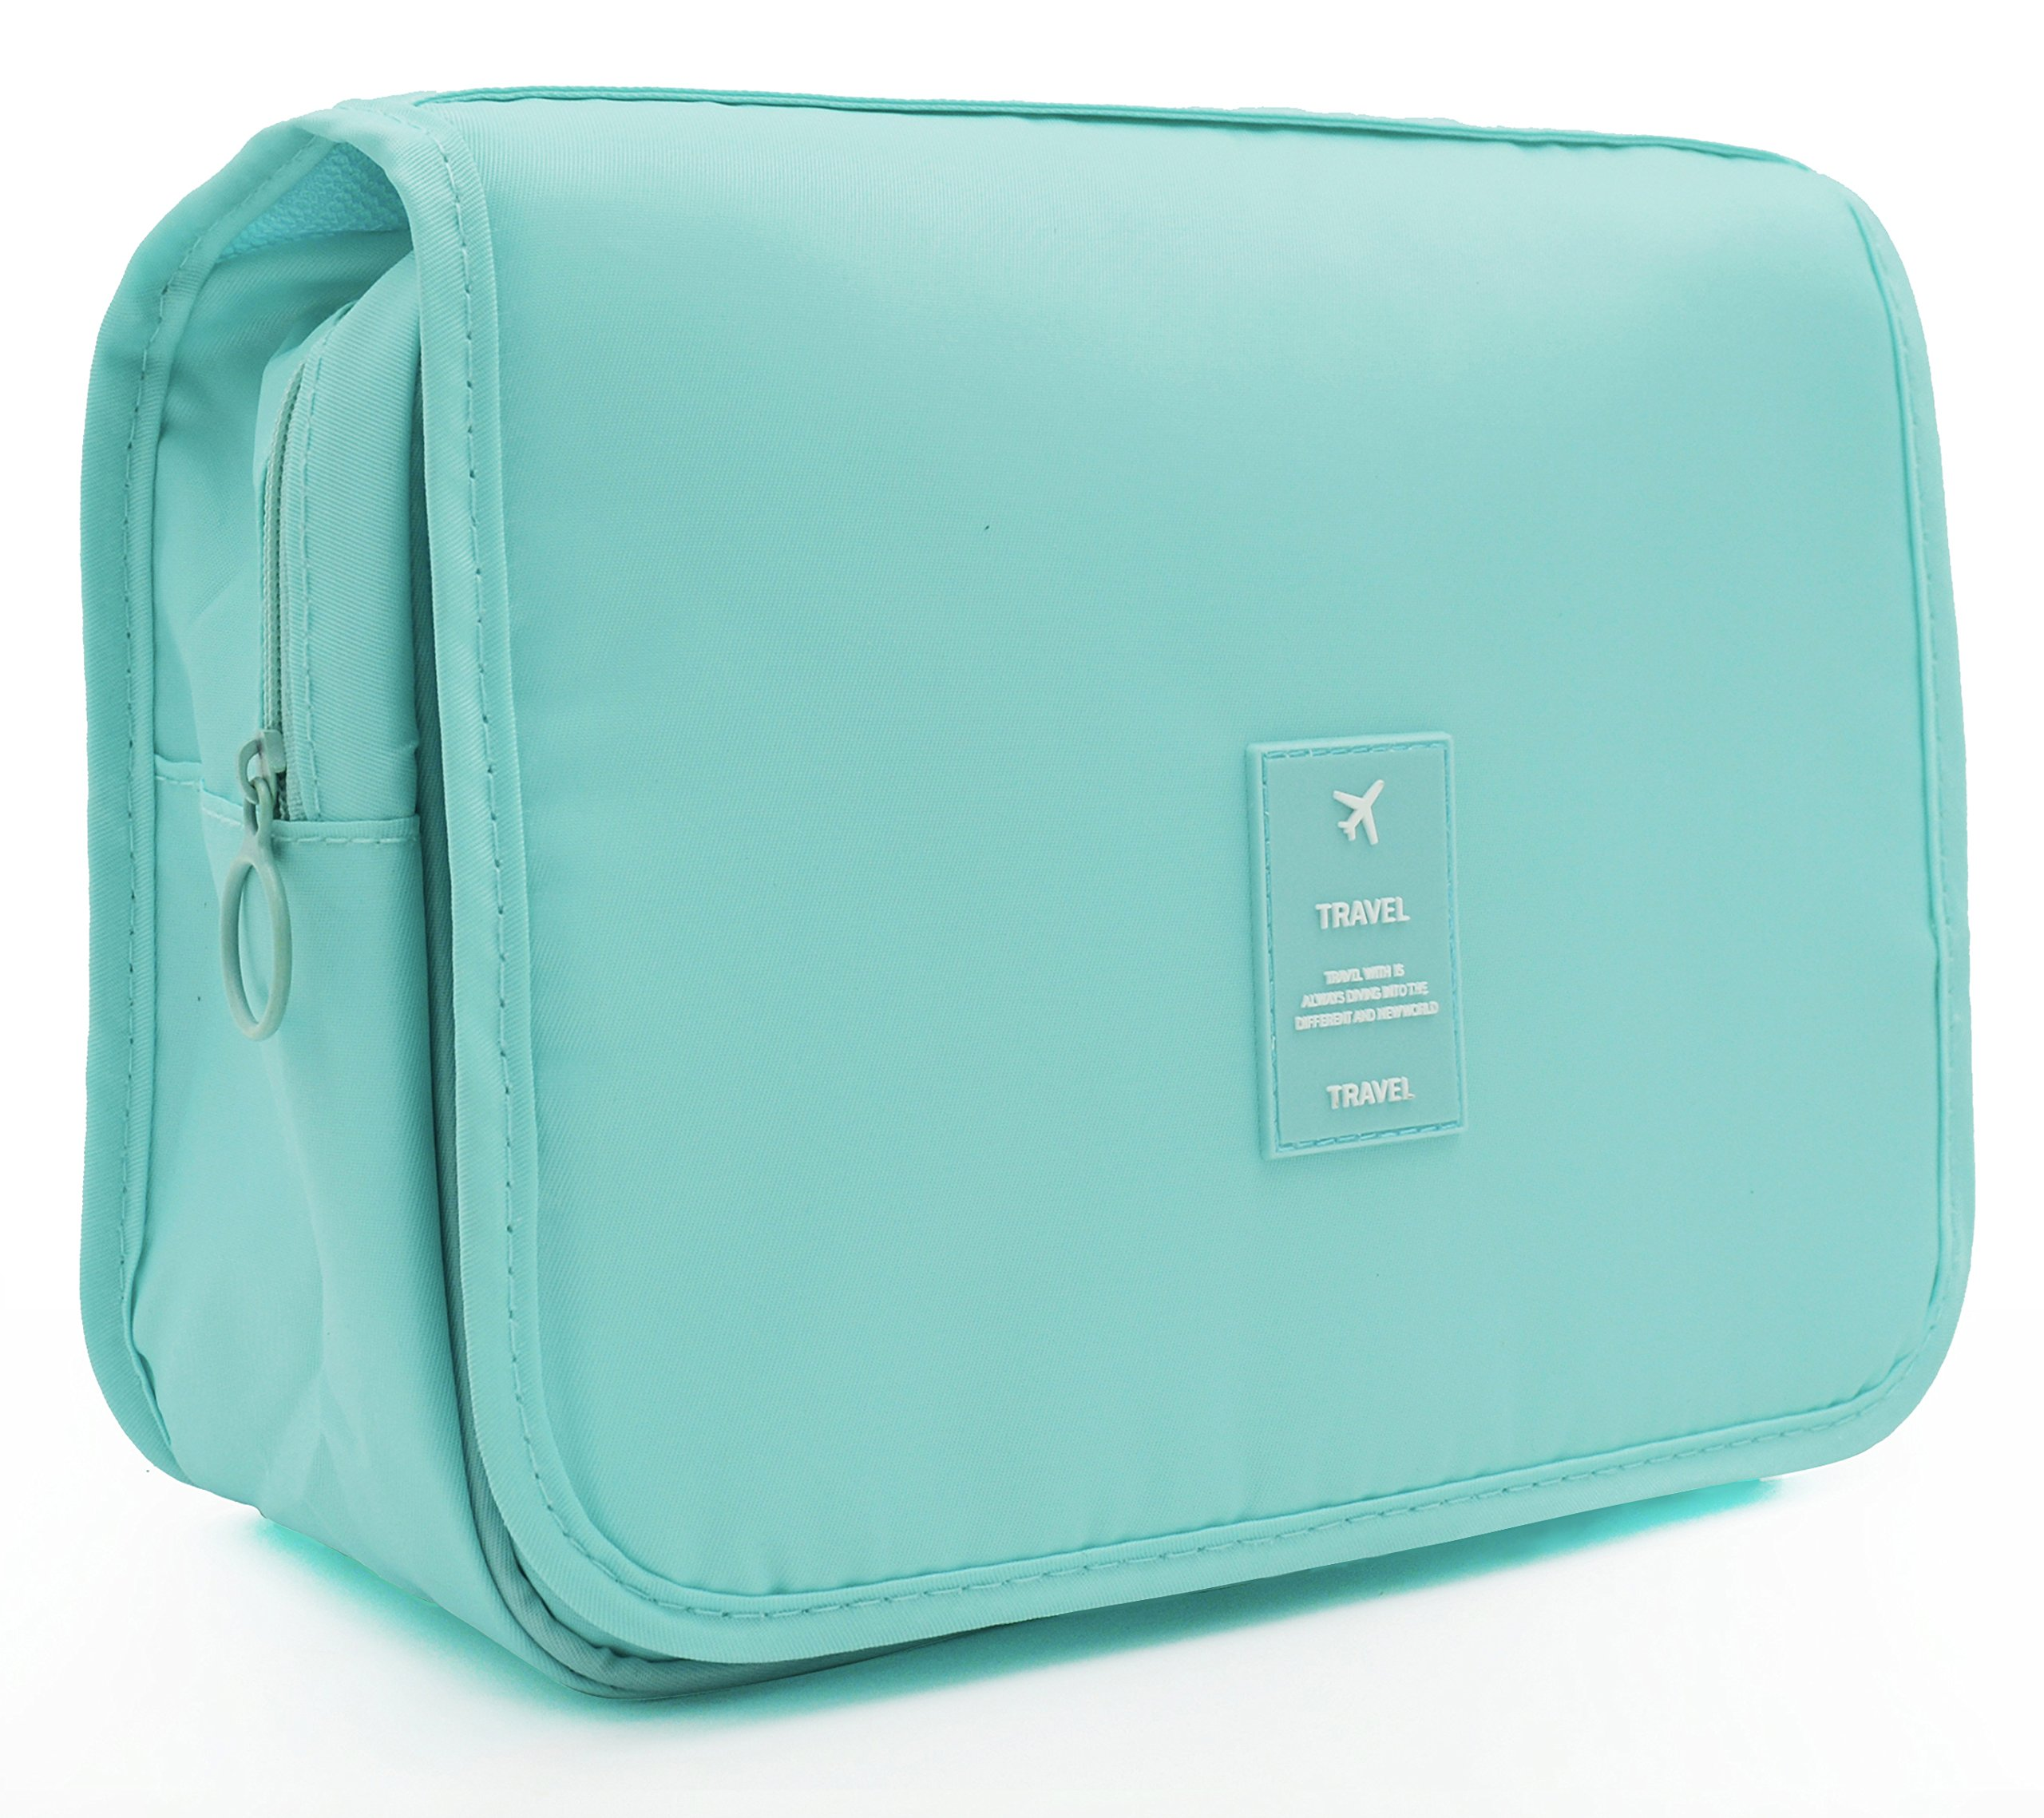 Portable Hanging Travel Toiletry Bag Waterproof Makeup Organizer Cosmetic Bag Pouch For Women Girl (light blue)